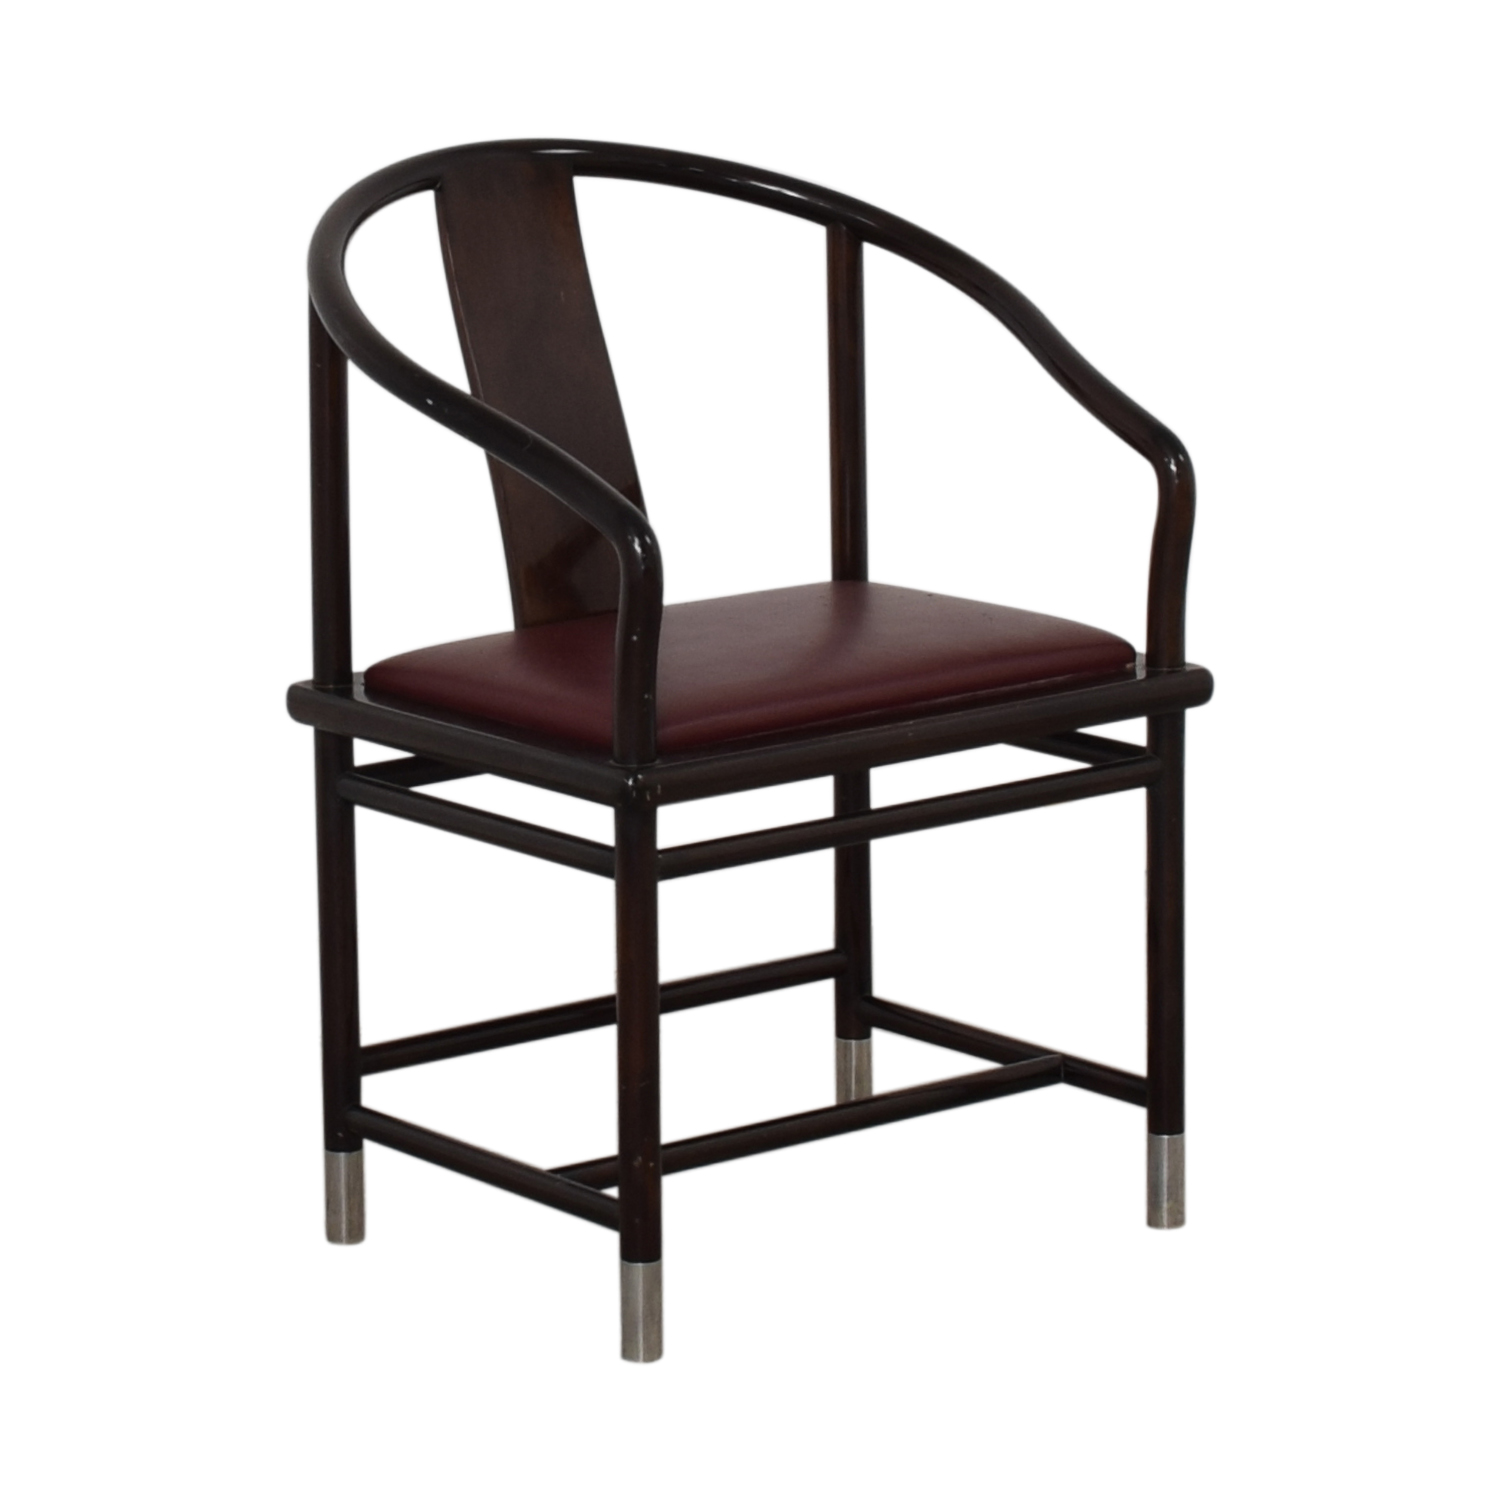 Brueton Brueton Wood and Burgundy Upholstered Accent Chair on sale